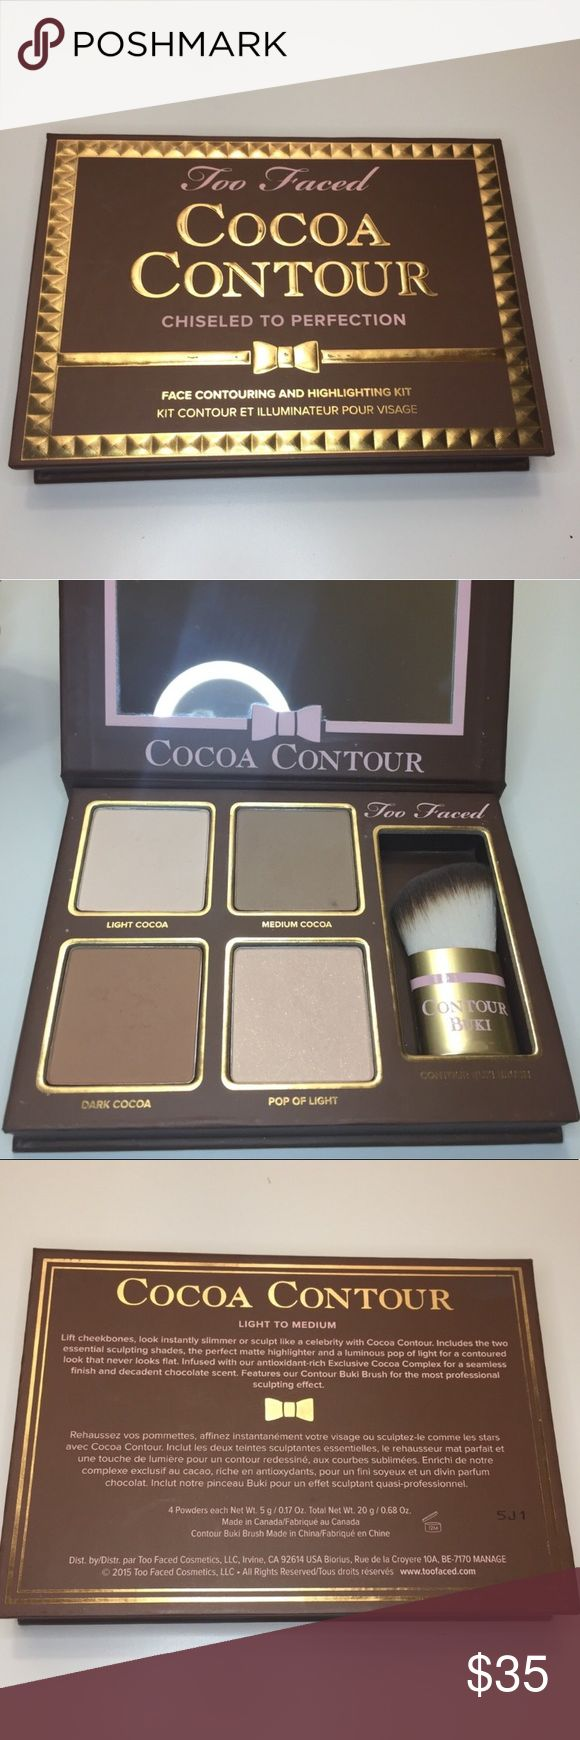 Too Faced Cocoa Contour Kit Kit comes with 4 shades and a brush  Still good as new✨  Details: Cocoa Contour gives you the power to enhance your most beautiful features and minimize the ones you want to hide in a few simple steps. This curated kit comes with the two essential sculpting shades, the perfect matte highlighter, and a luminous pop of light for a contoured look that never looks flat. Infused with the antioxidant-rich Exclusive Cocoa Complex. Too Faced Makeup Bronzer